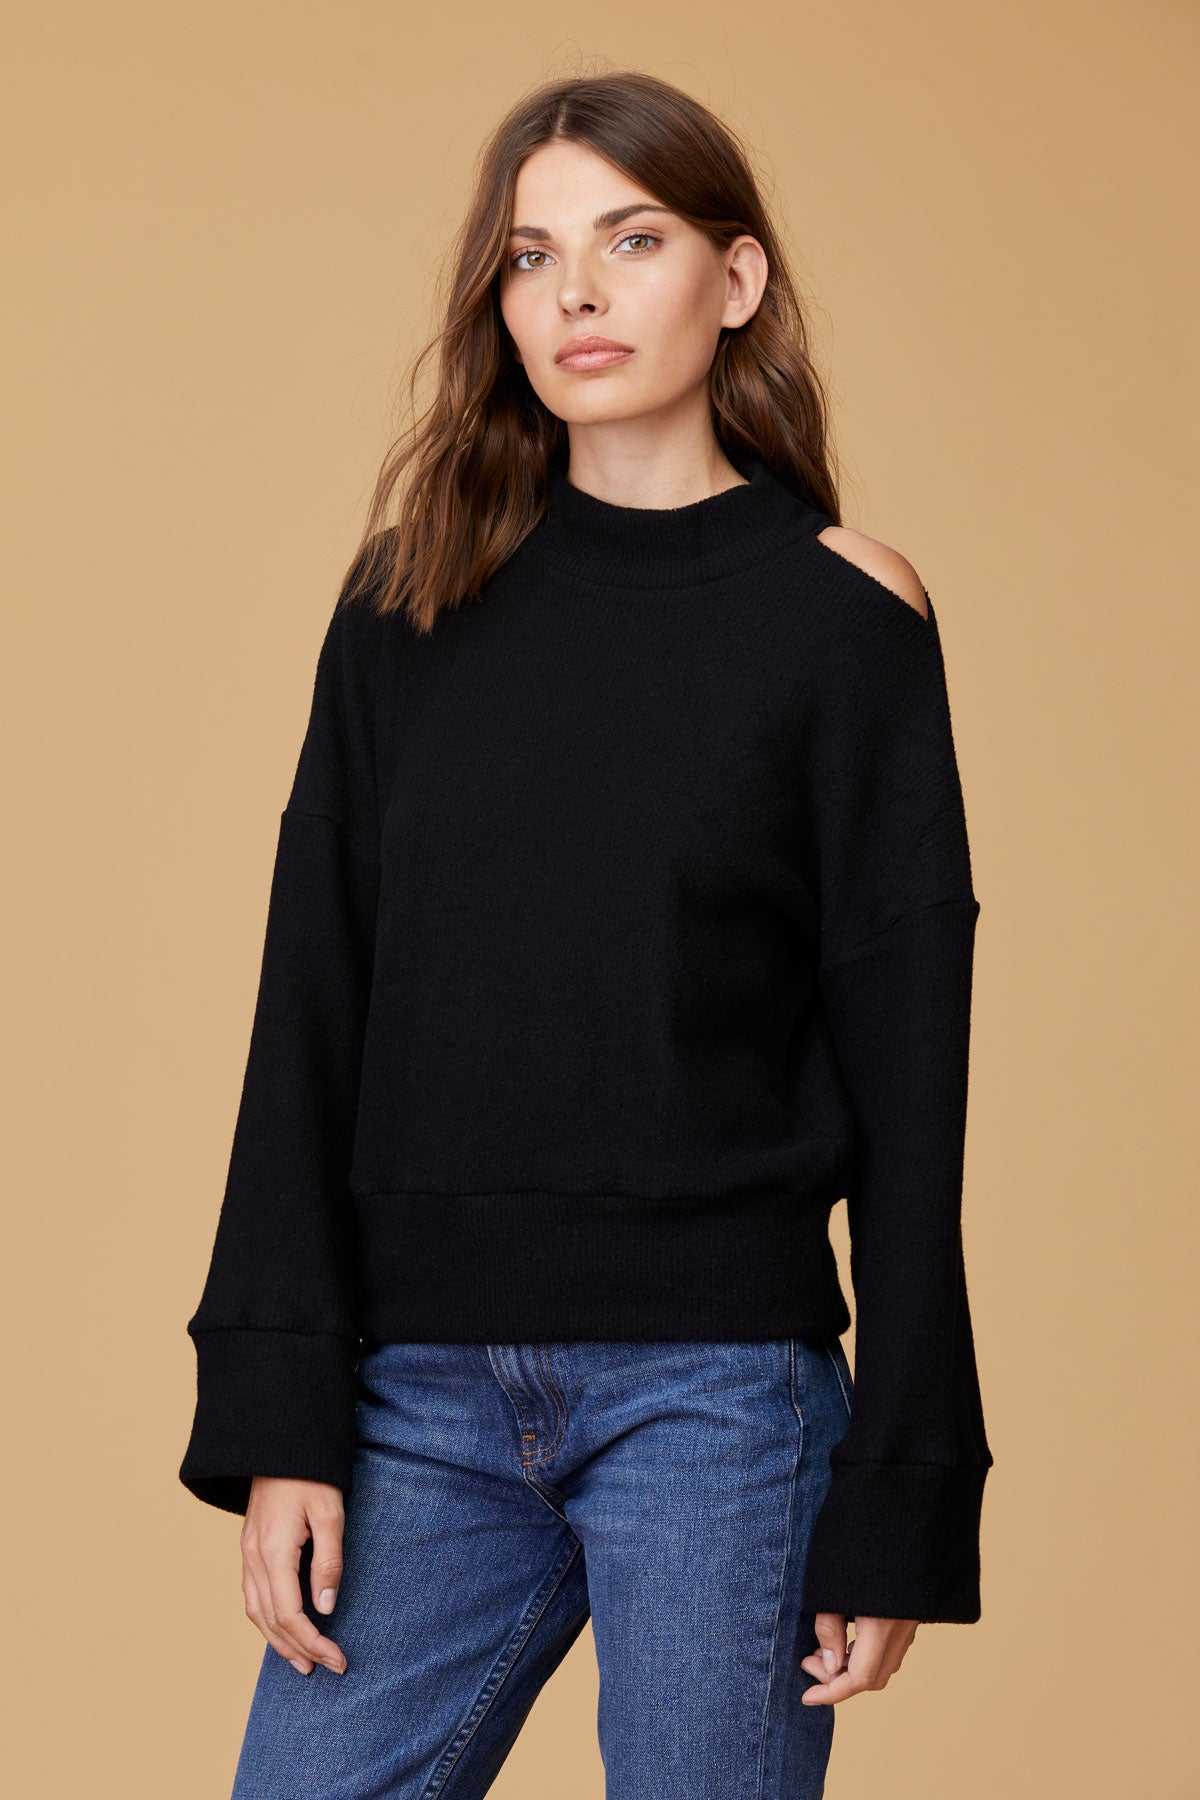 LNA Adore Rib Cutout Sweater in Black